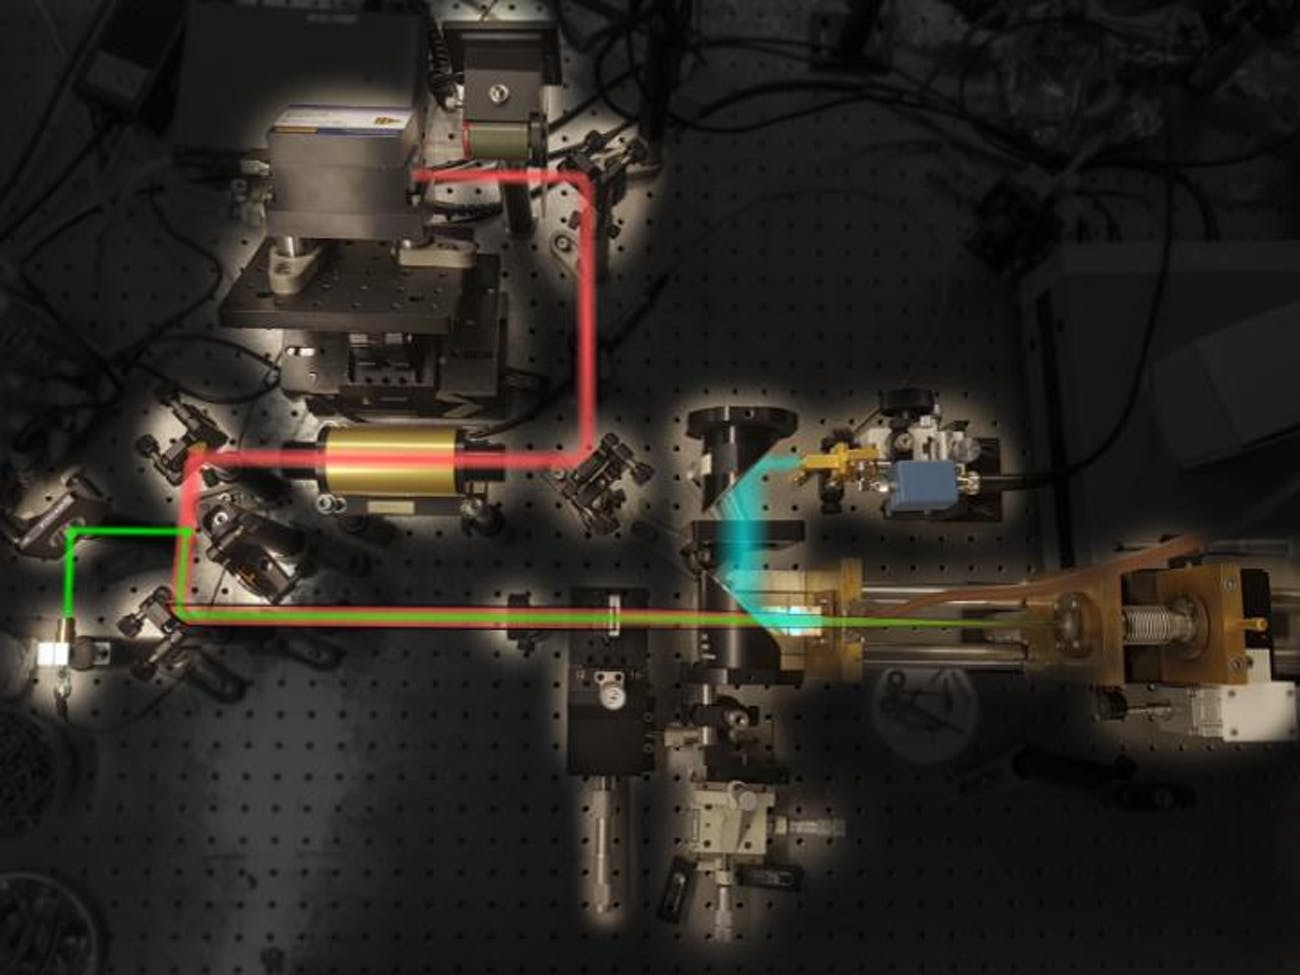 Picture of the experimental setup showing the different components of the system and highlighting the path followed by the QCL light (red) and THz radiation (blue).